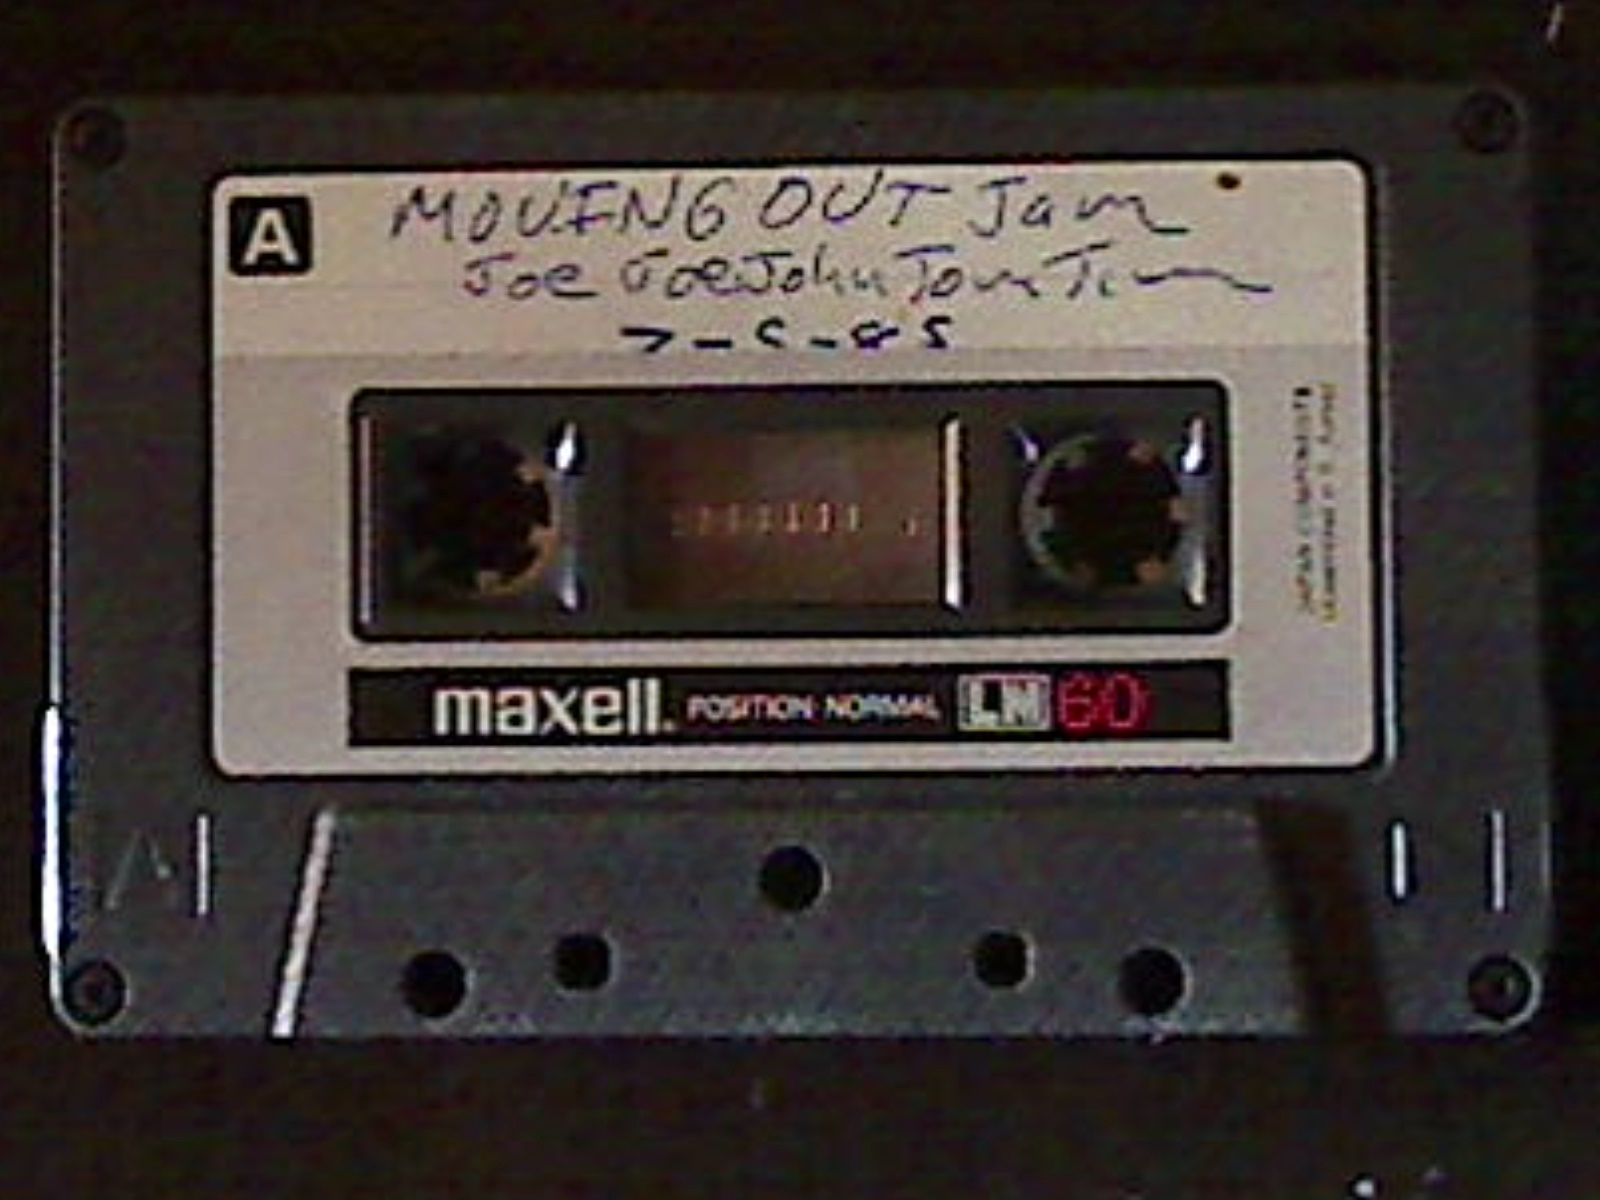 1985-07-05 - Moving Out Jam Me A